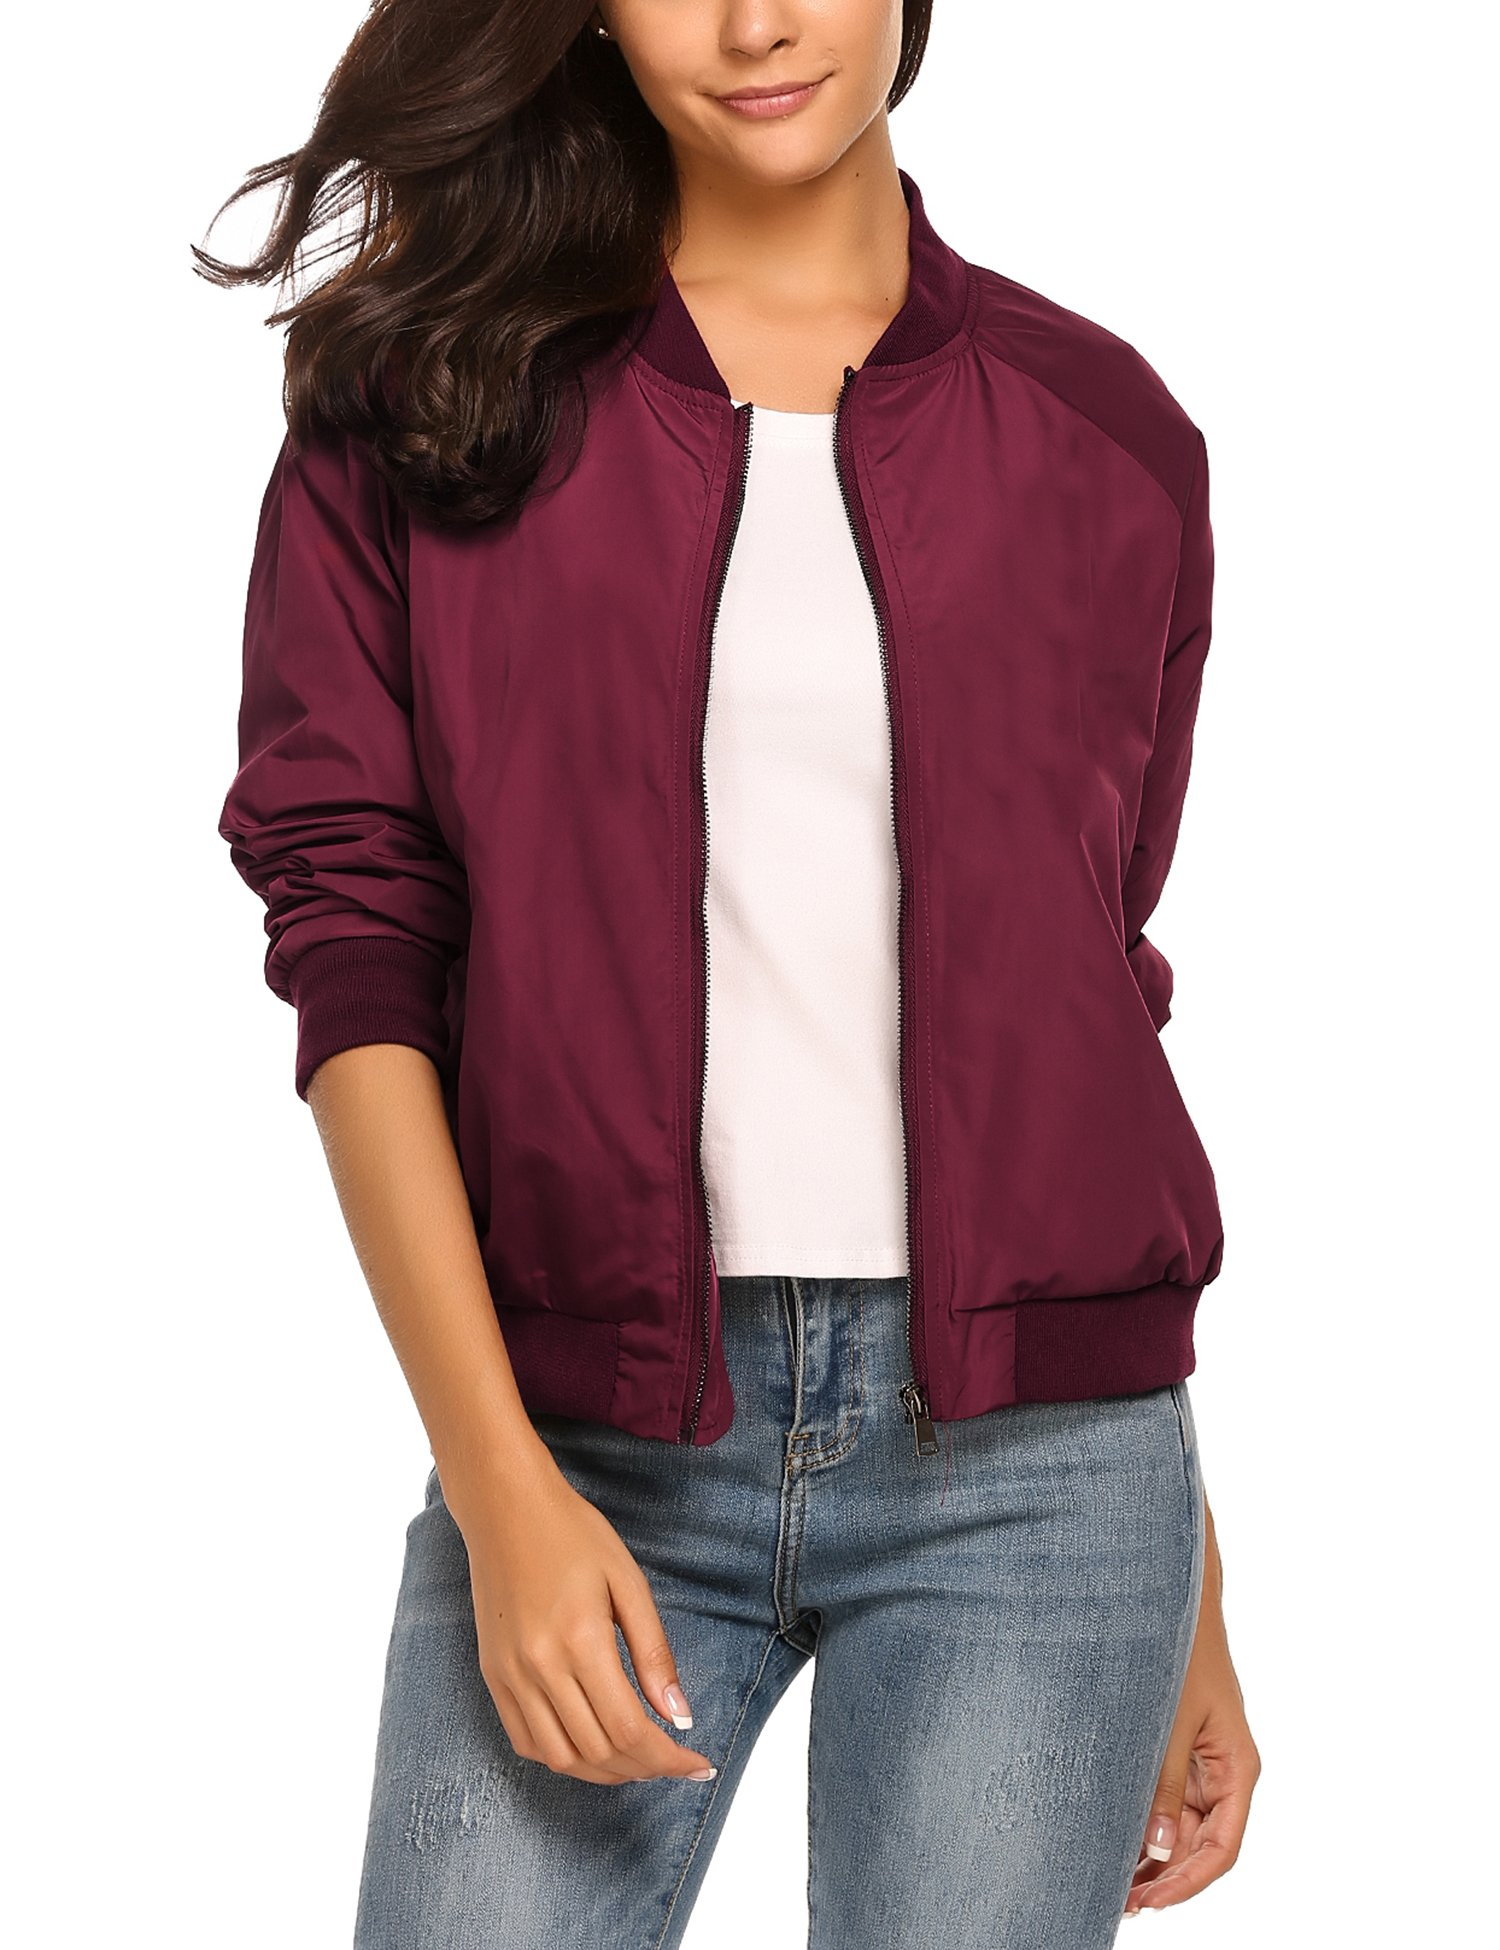 Zeagoo Womens Classic Quilted Jacket Short Bomber Jacket Coat,Wine Red New,X-Large